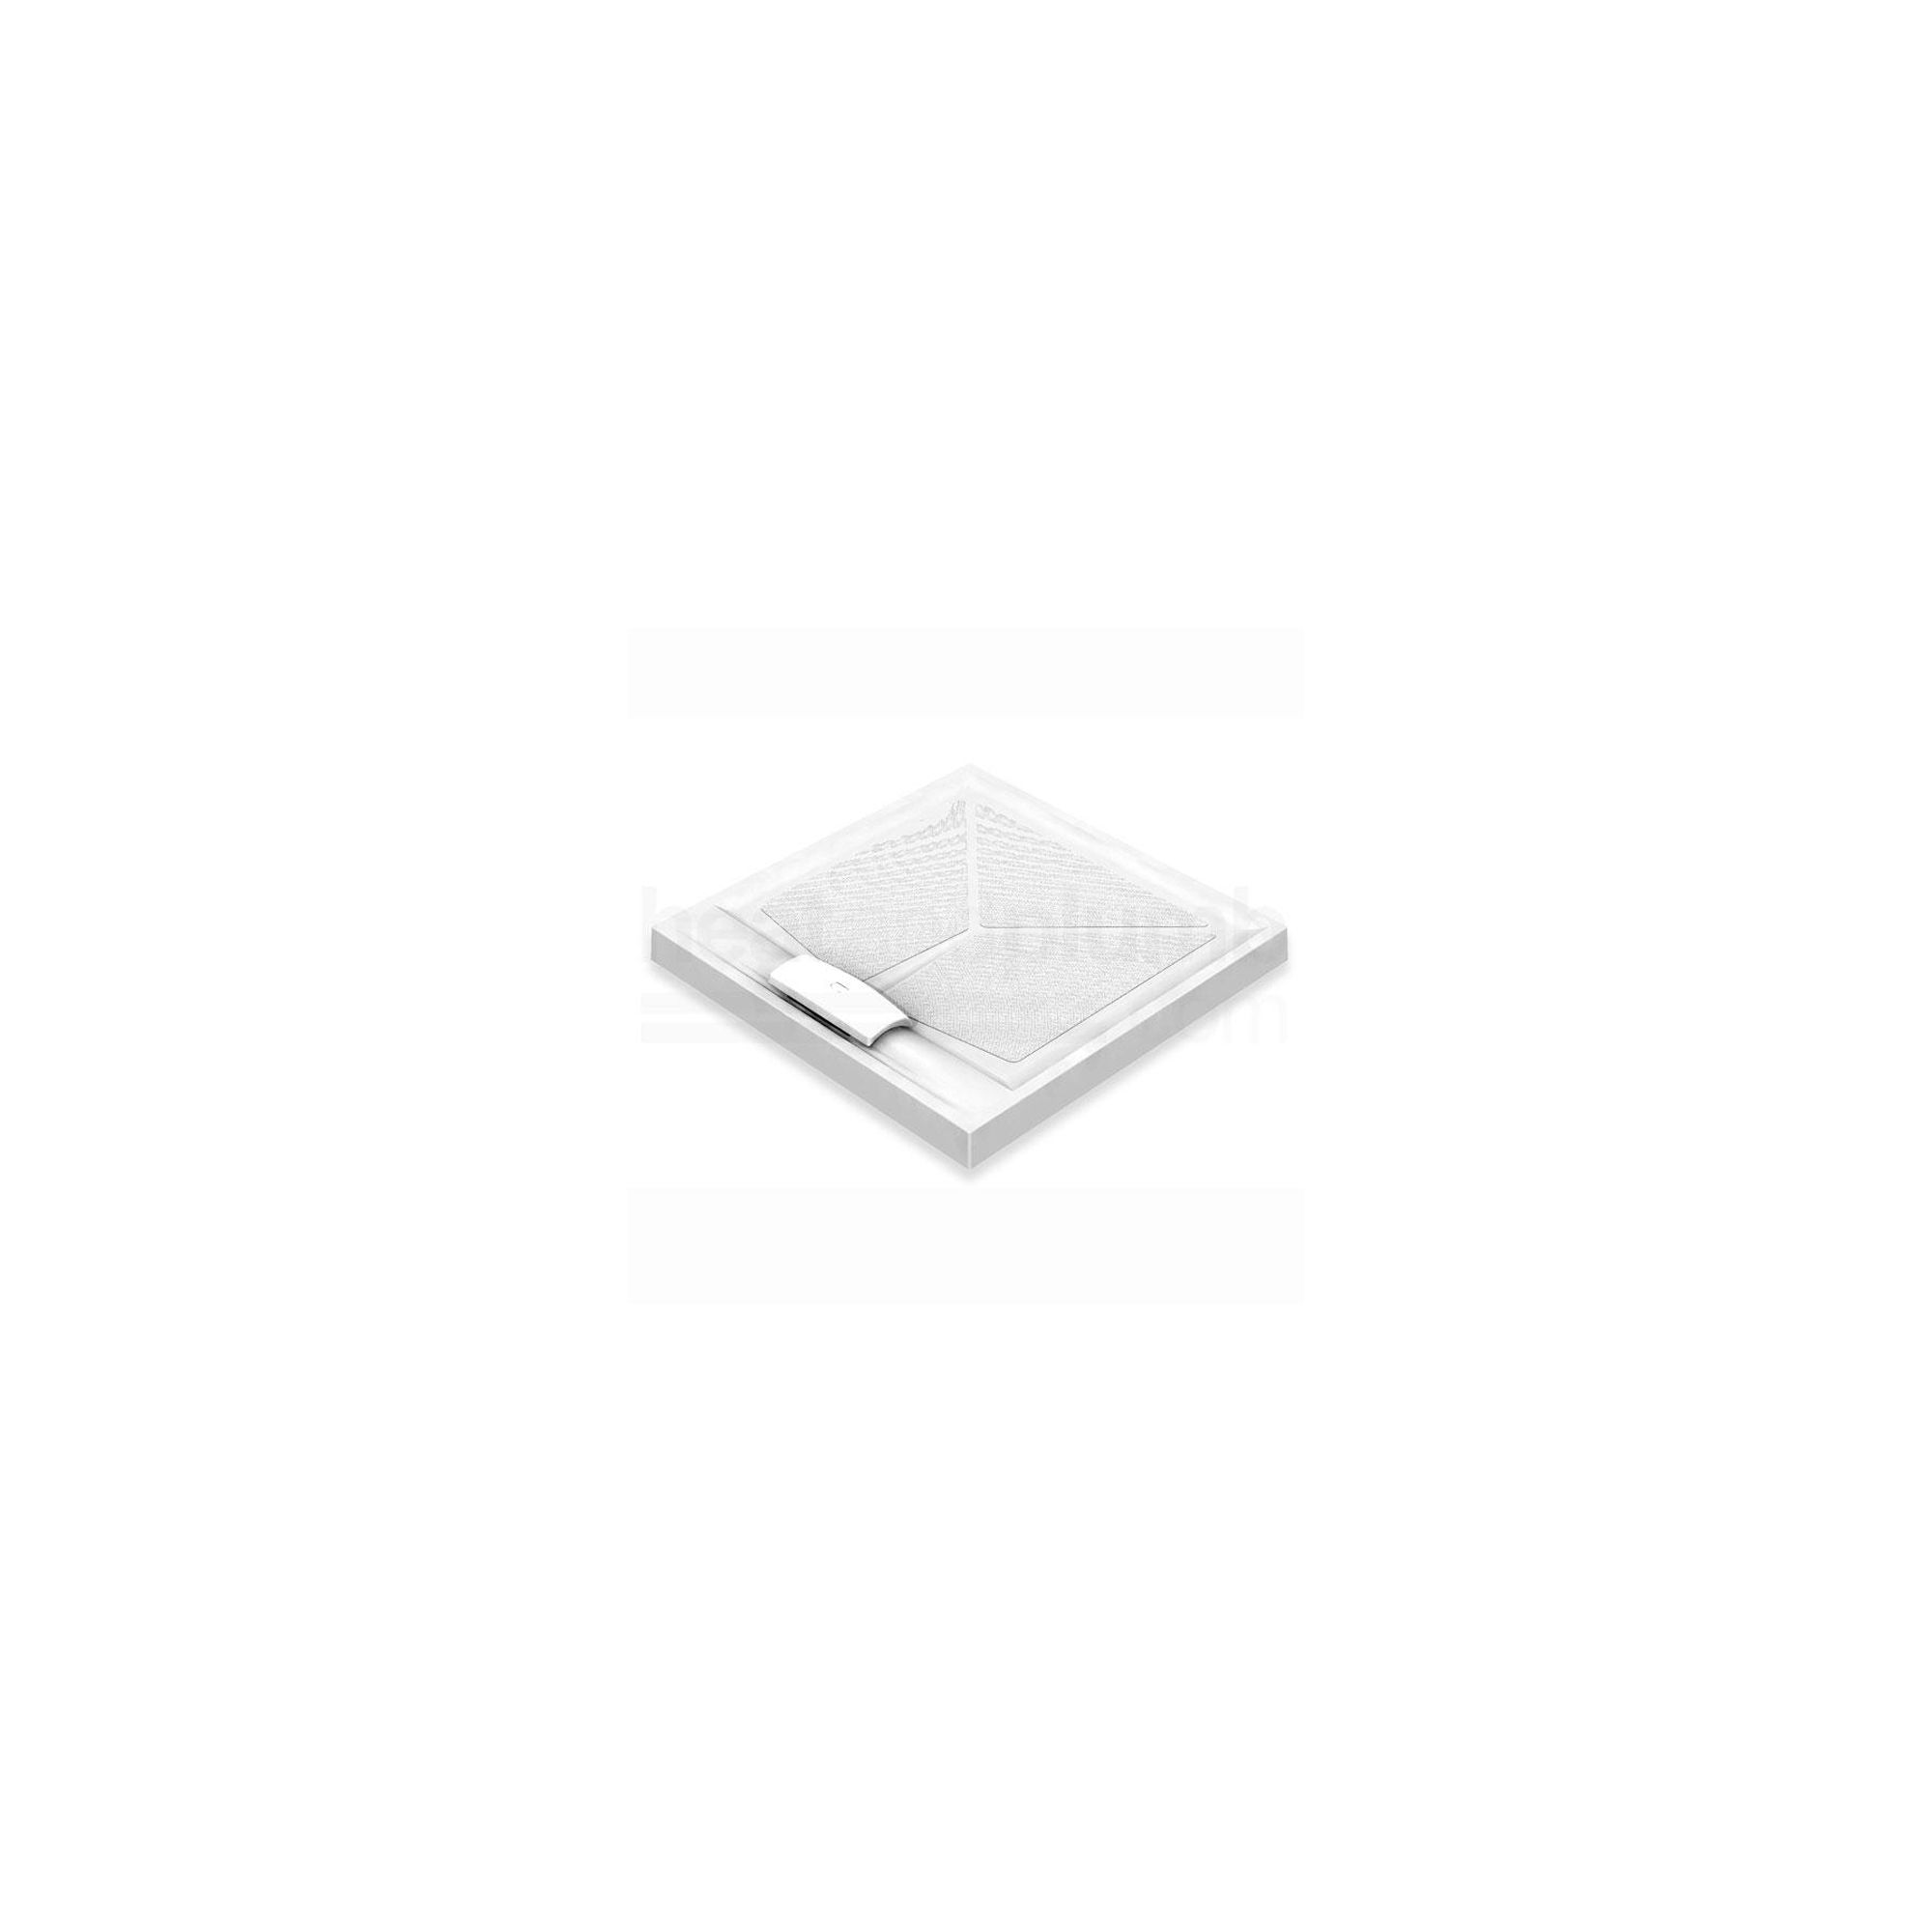 AKW Sulby Square Shower Tray 900mm x 900mm at Tesco Direct